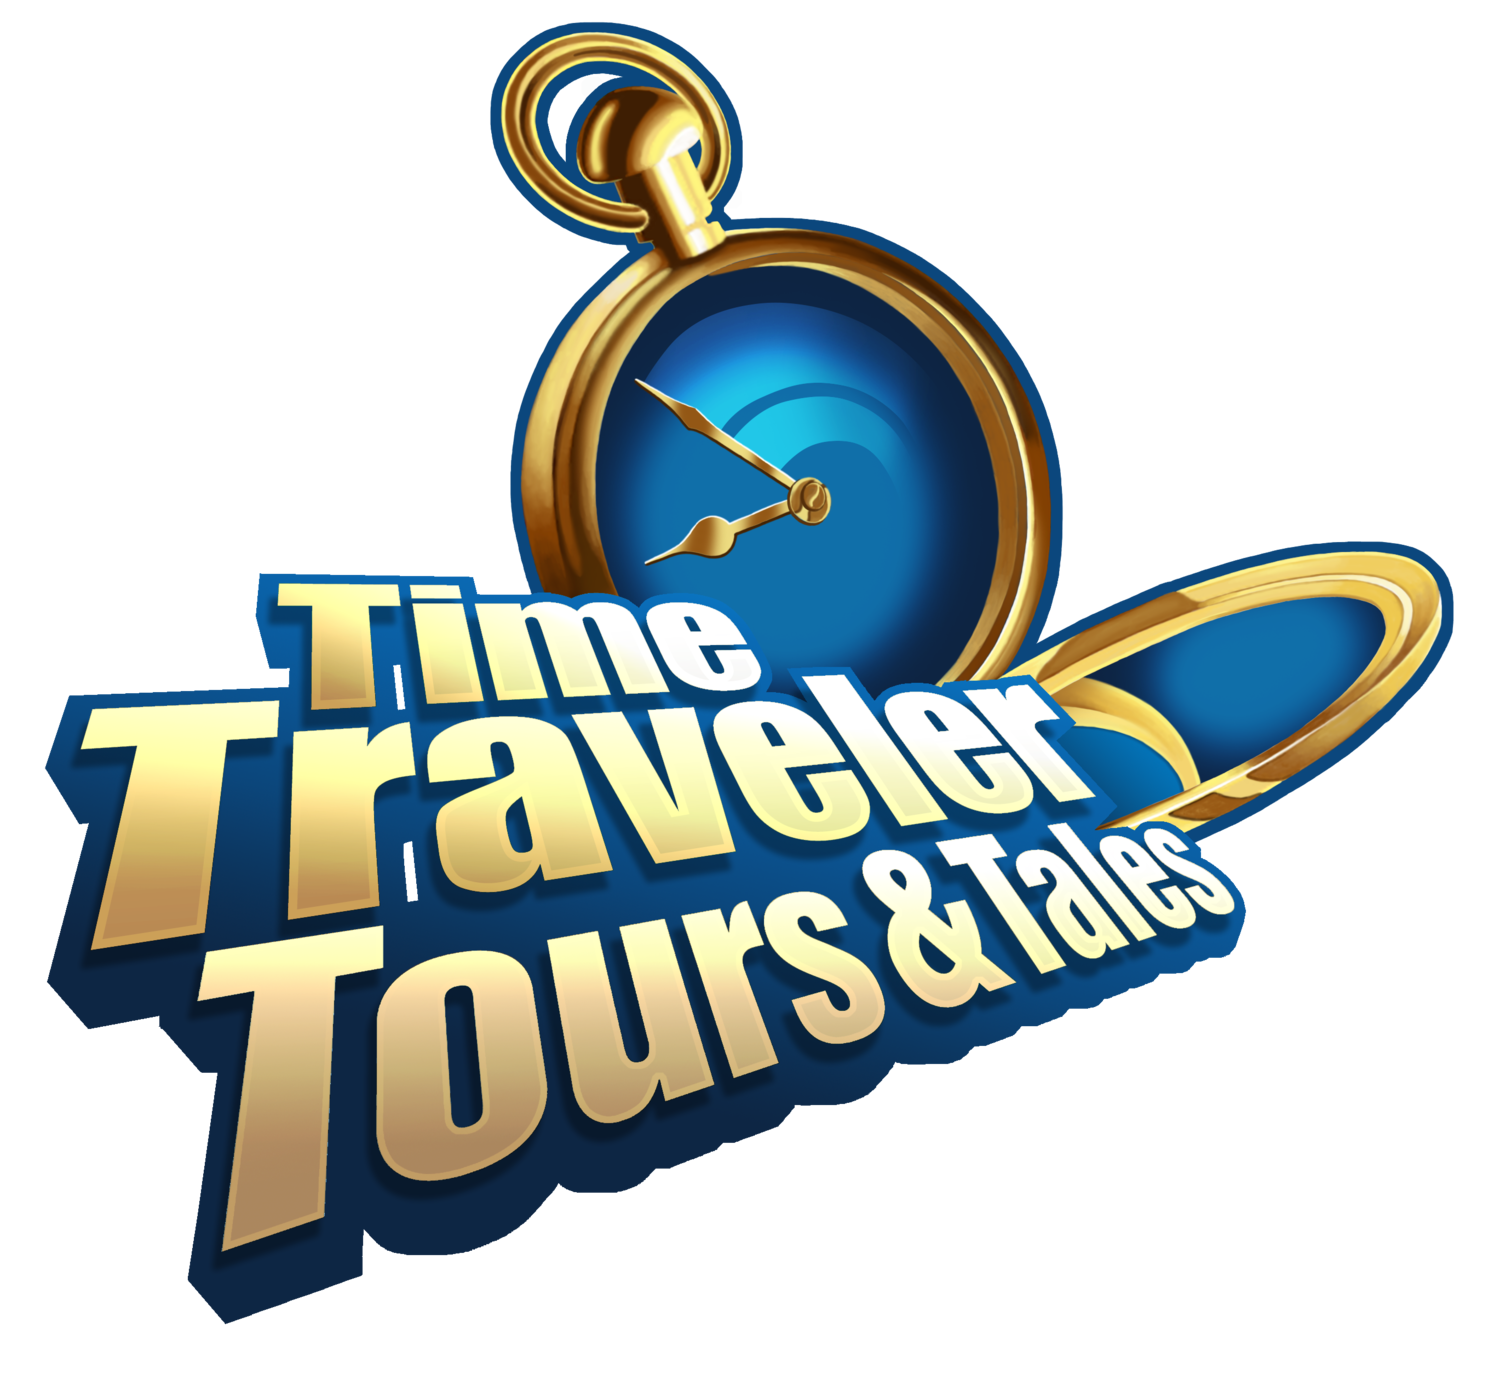 Time Traveler Tours & Tales